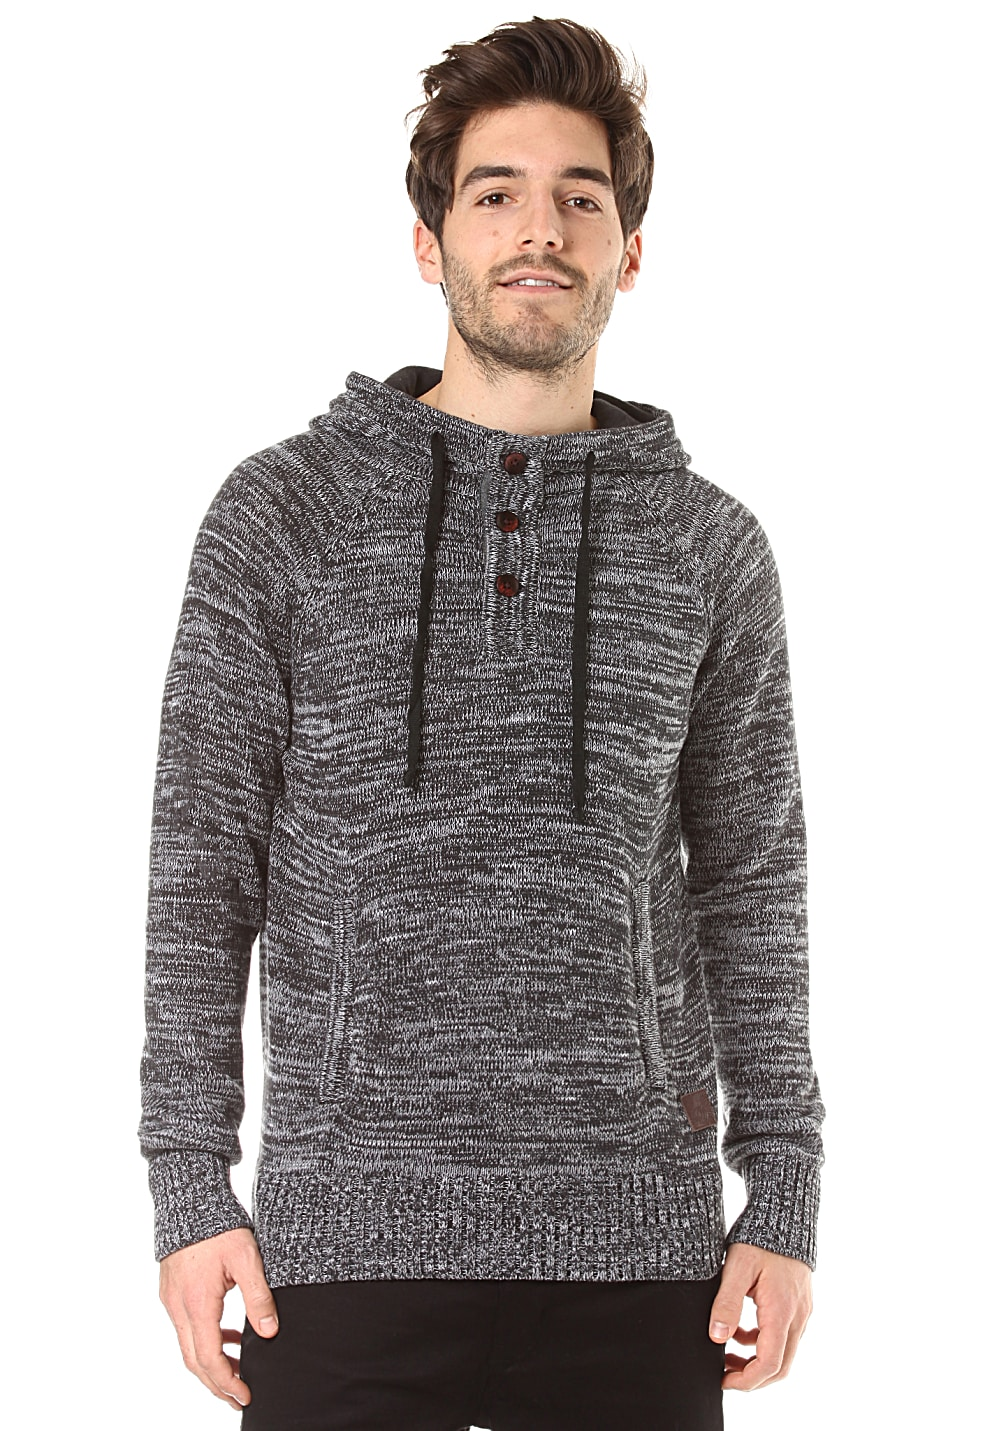 Light Knit Trail - Strickpullover für Herren Grau